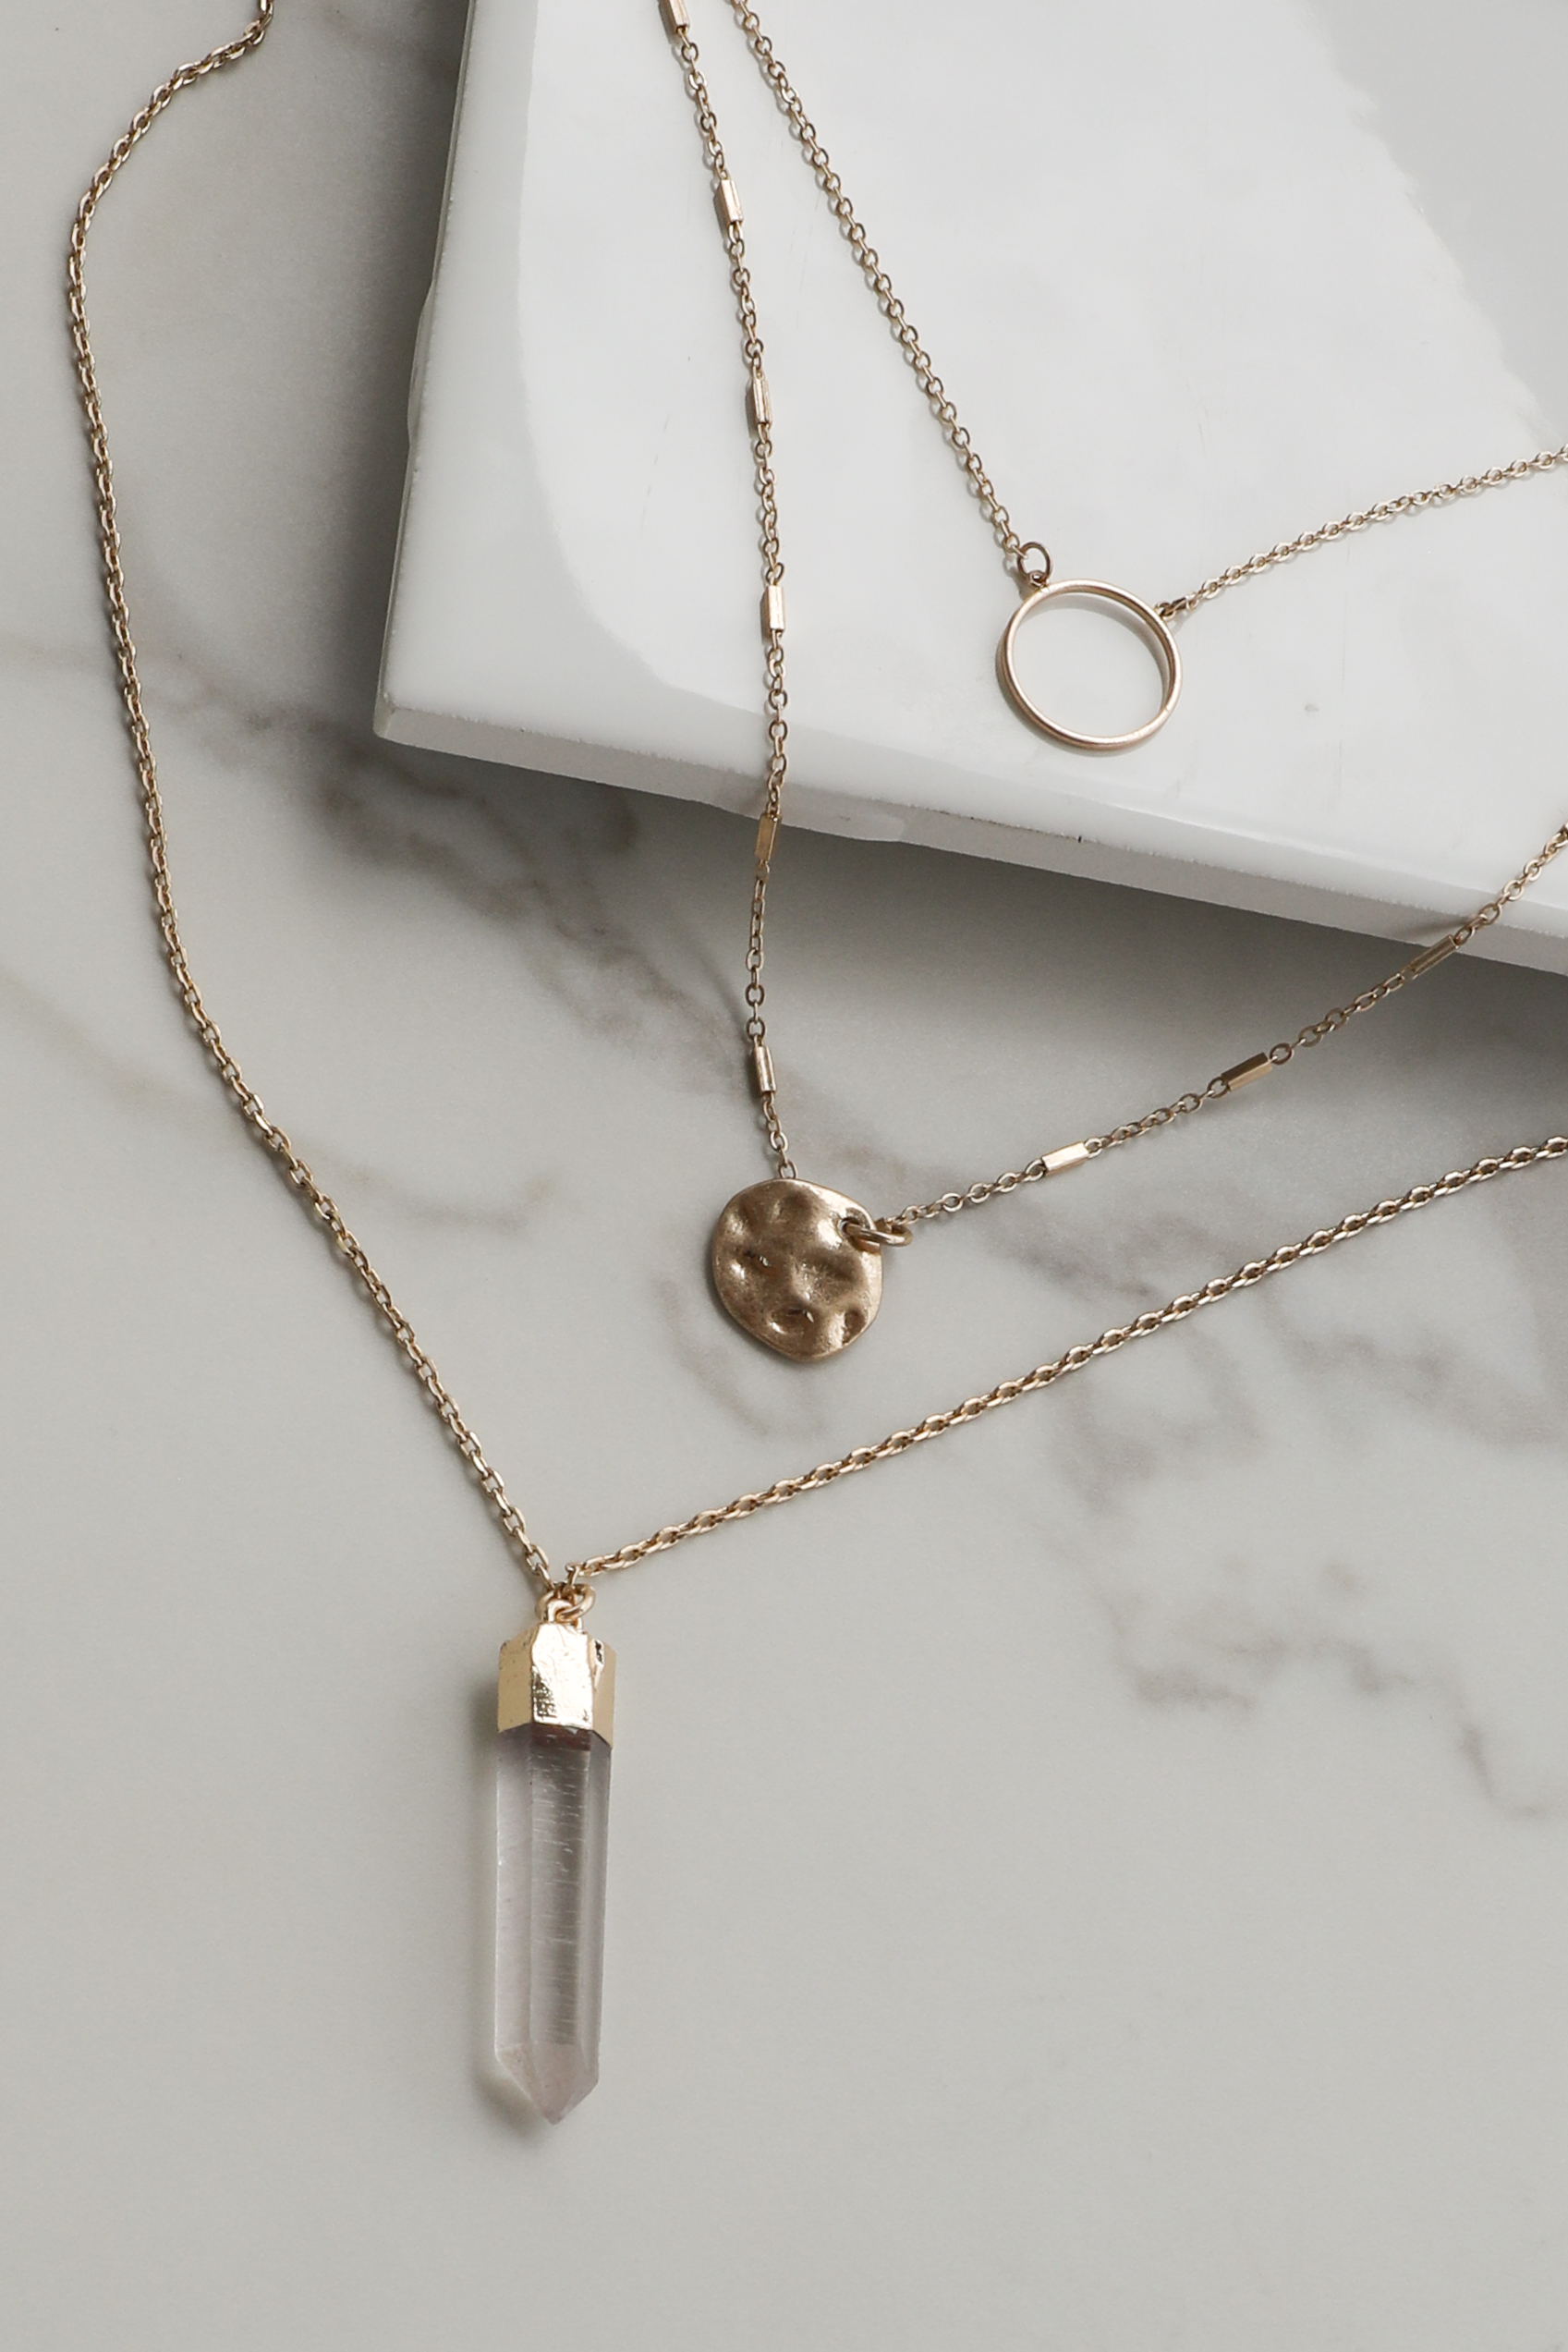 Gold Layered Necklace with Crystal Pendant